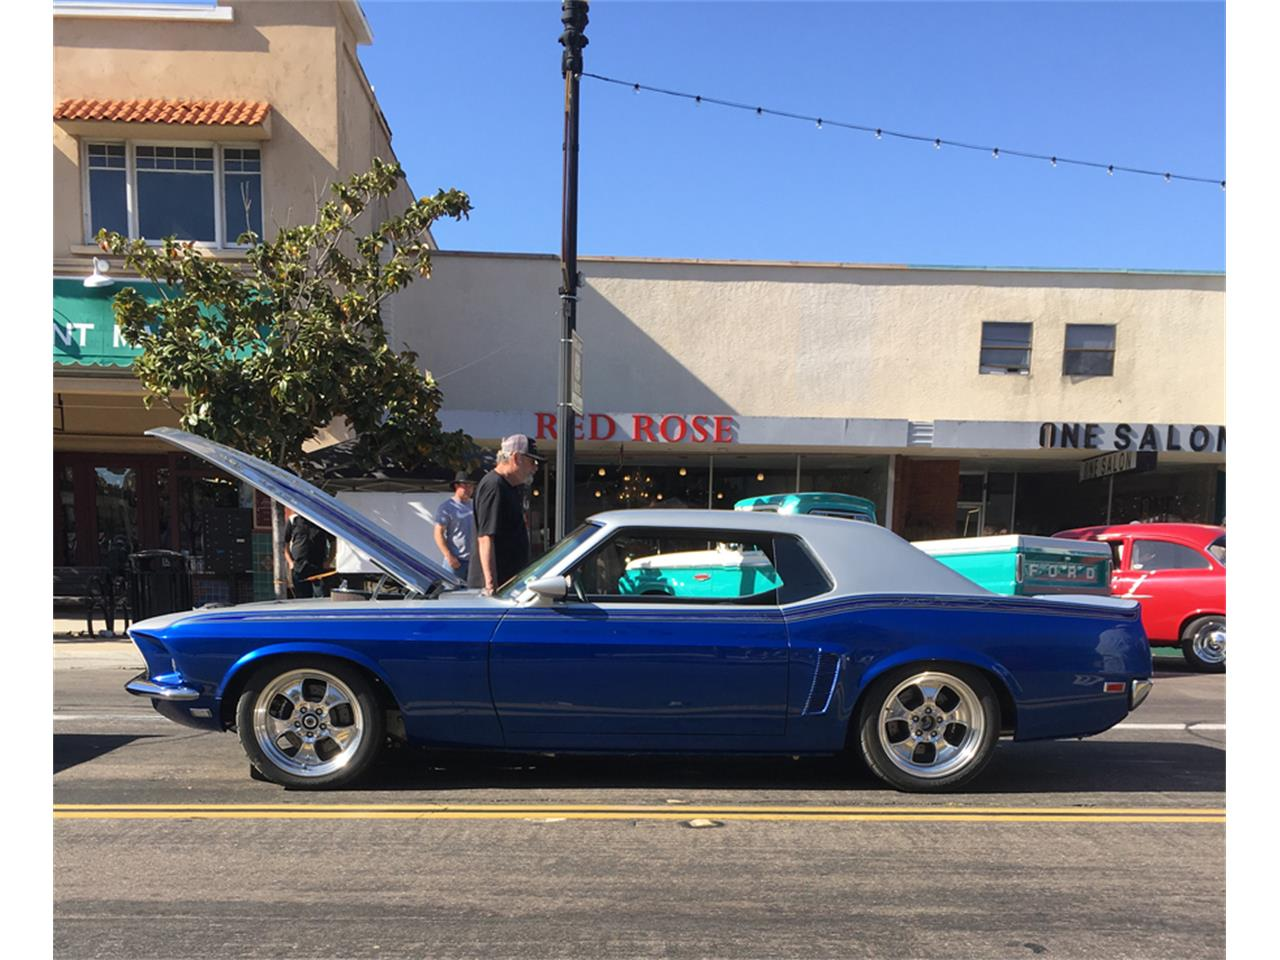 Large Picture of 1969 Ford Mustang located in Spring Valley California - $49,850.00 - L2HR